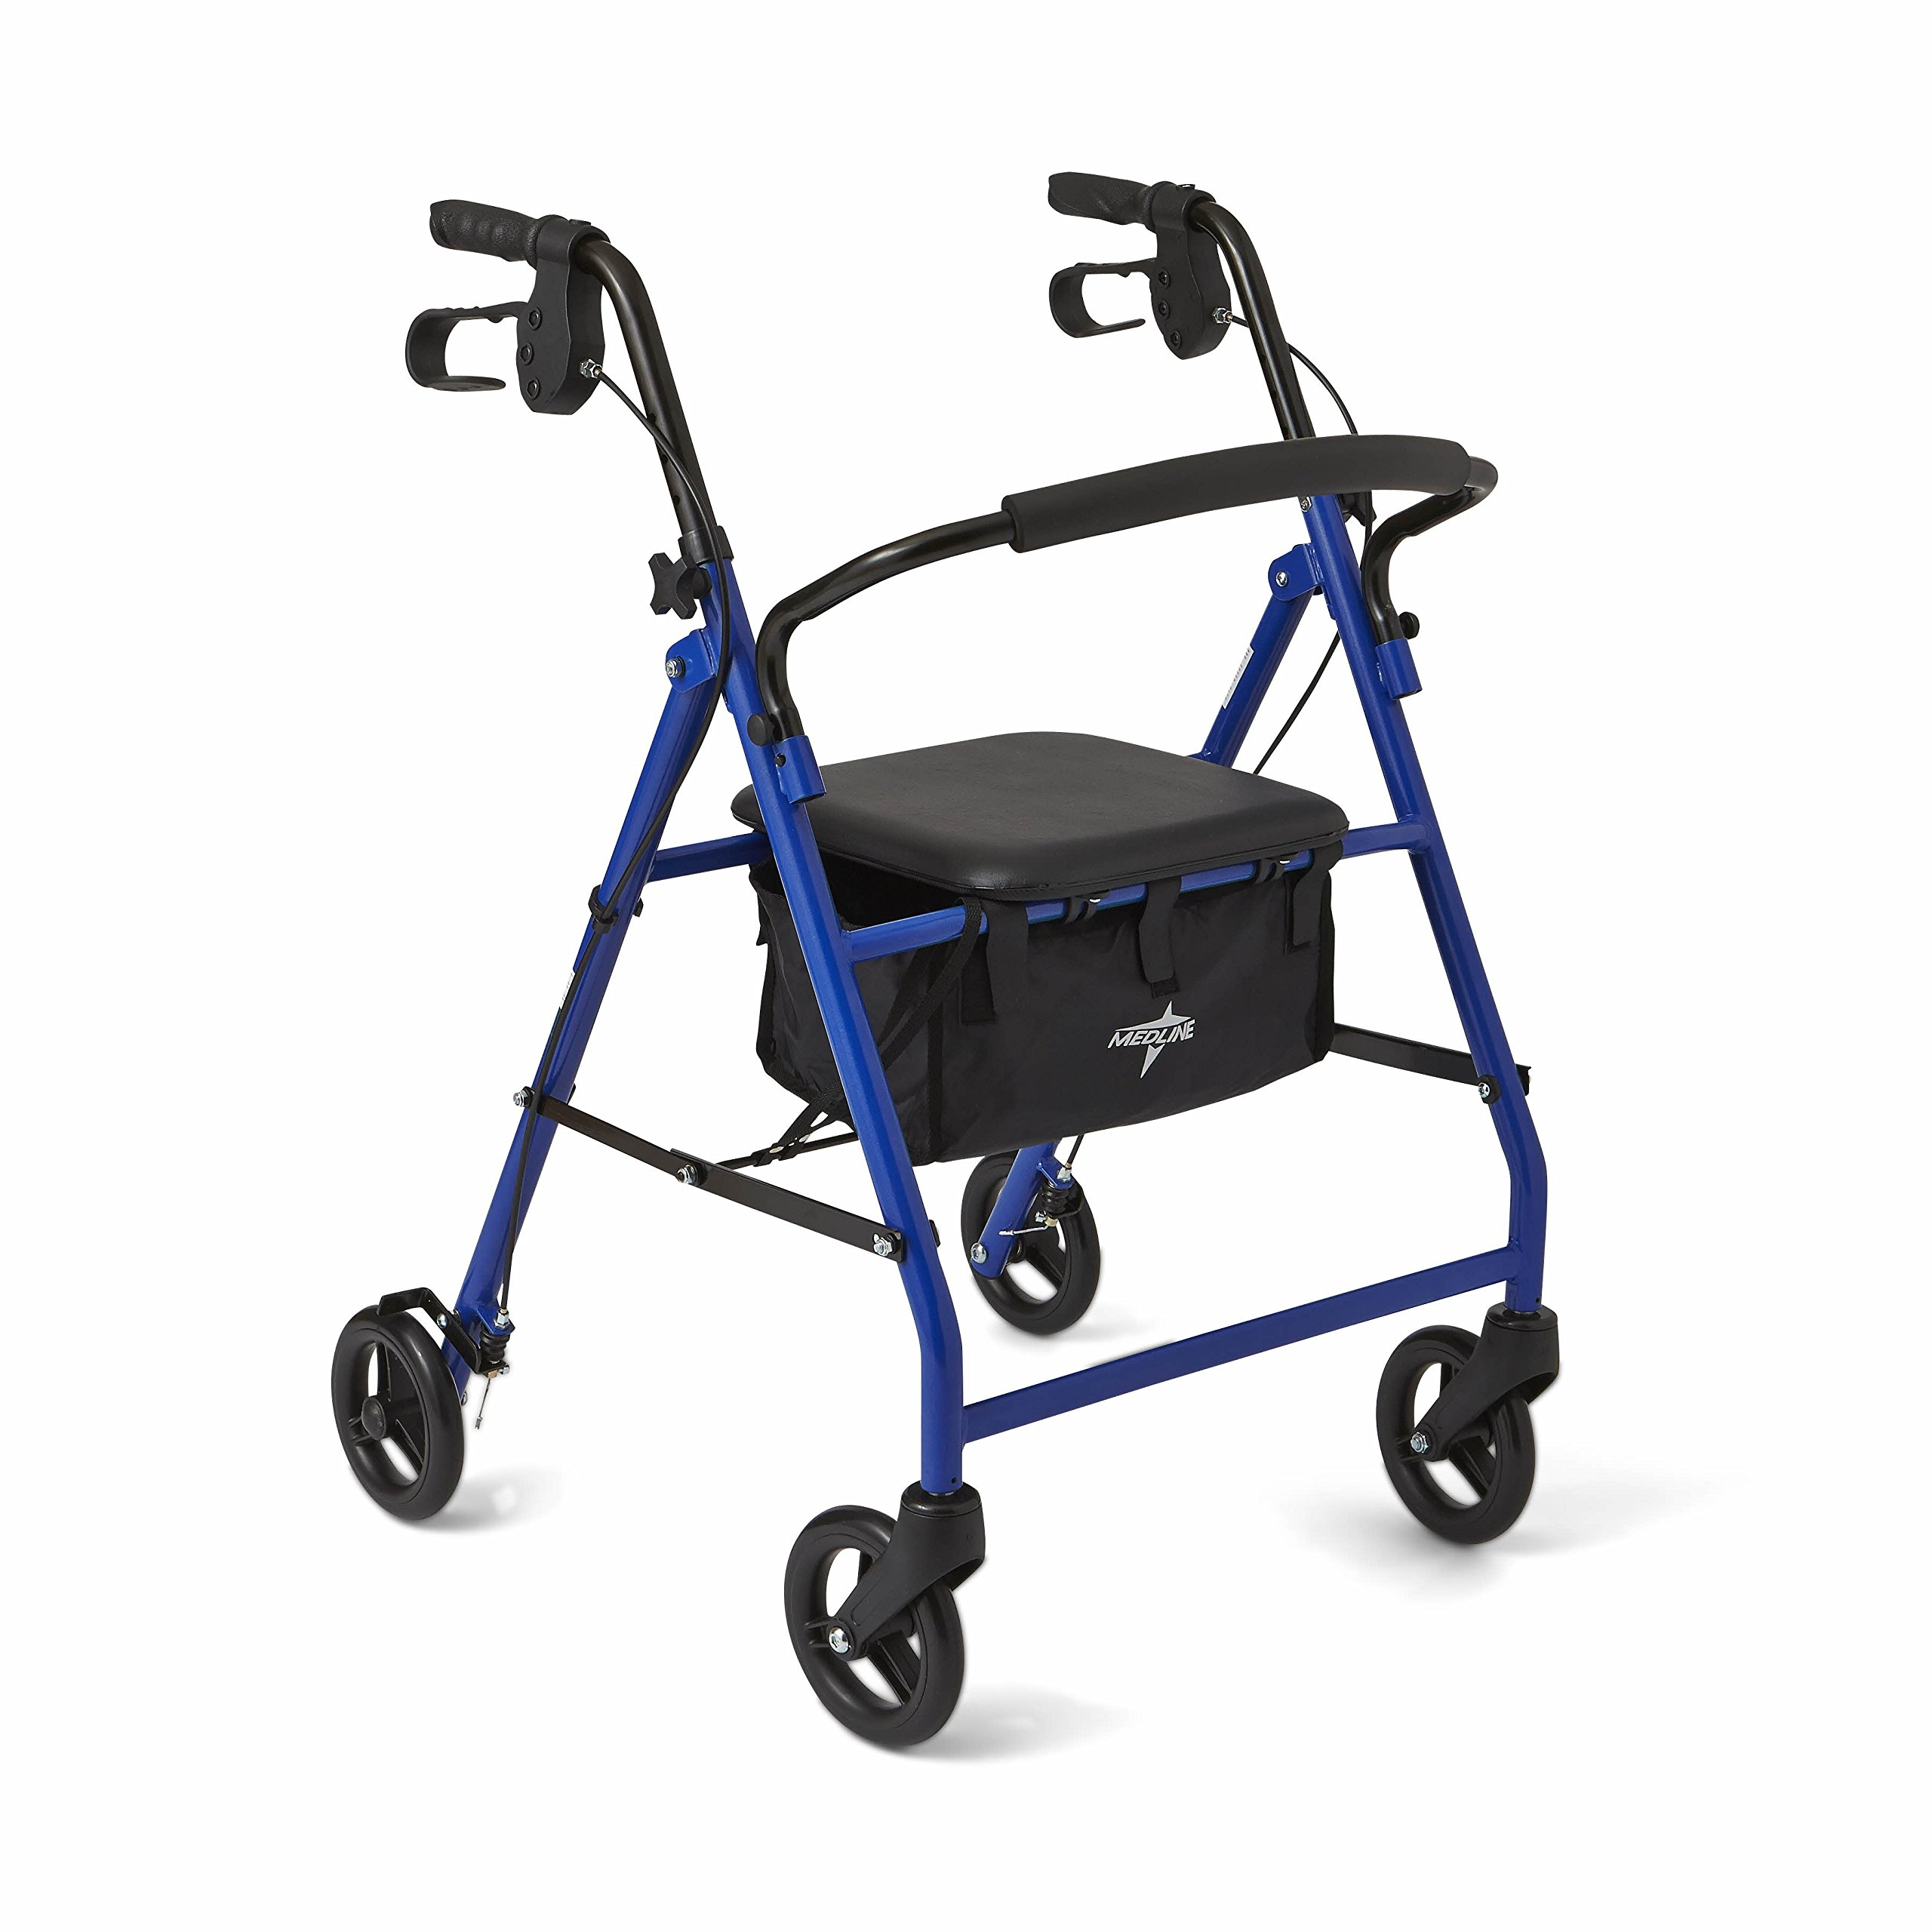 Medline Steel Foldable Adult Transport Rollator Mobility Walker with 6'' Wheels, Blue by Medline